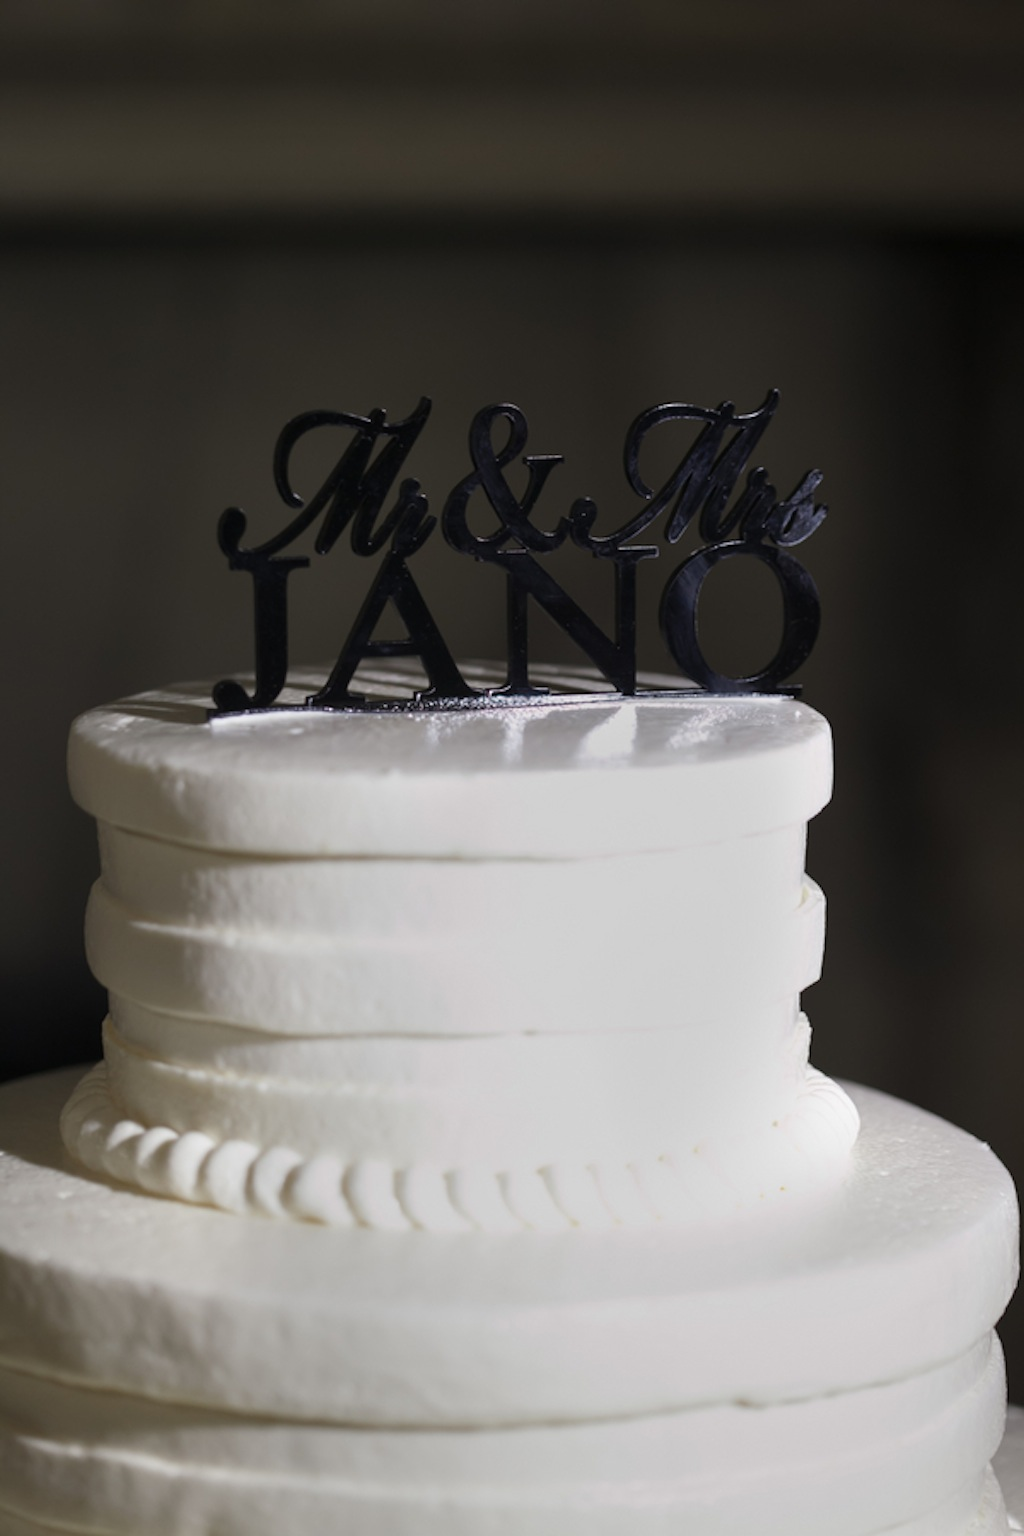 Round, White 3-Tiered Wedding Cake with Last Name Cake Topper